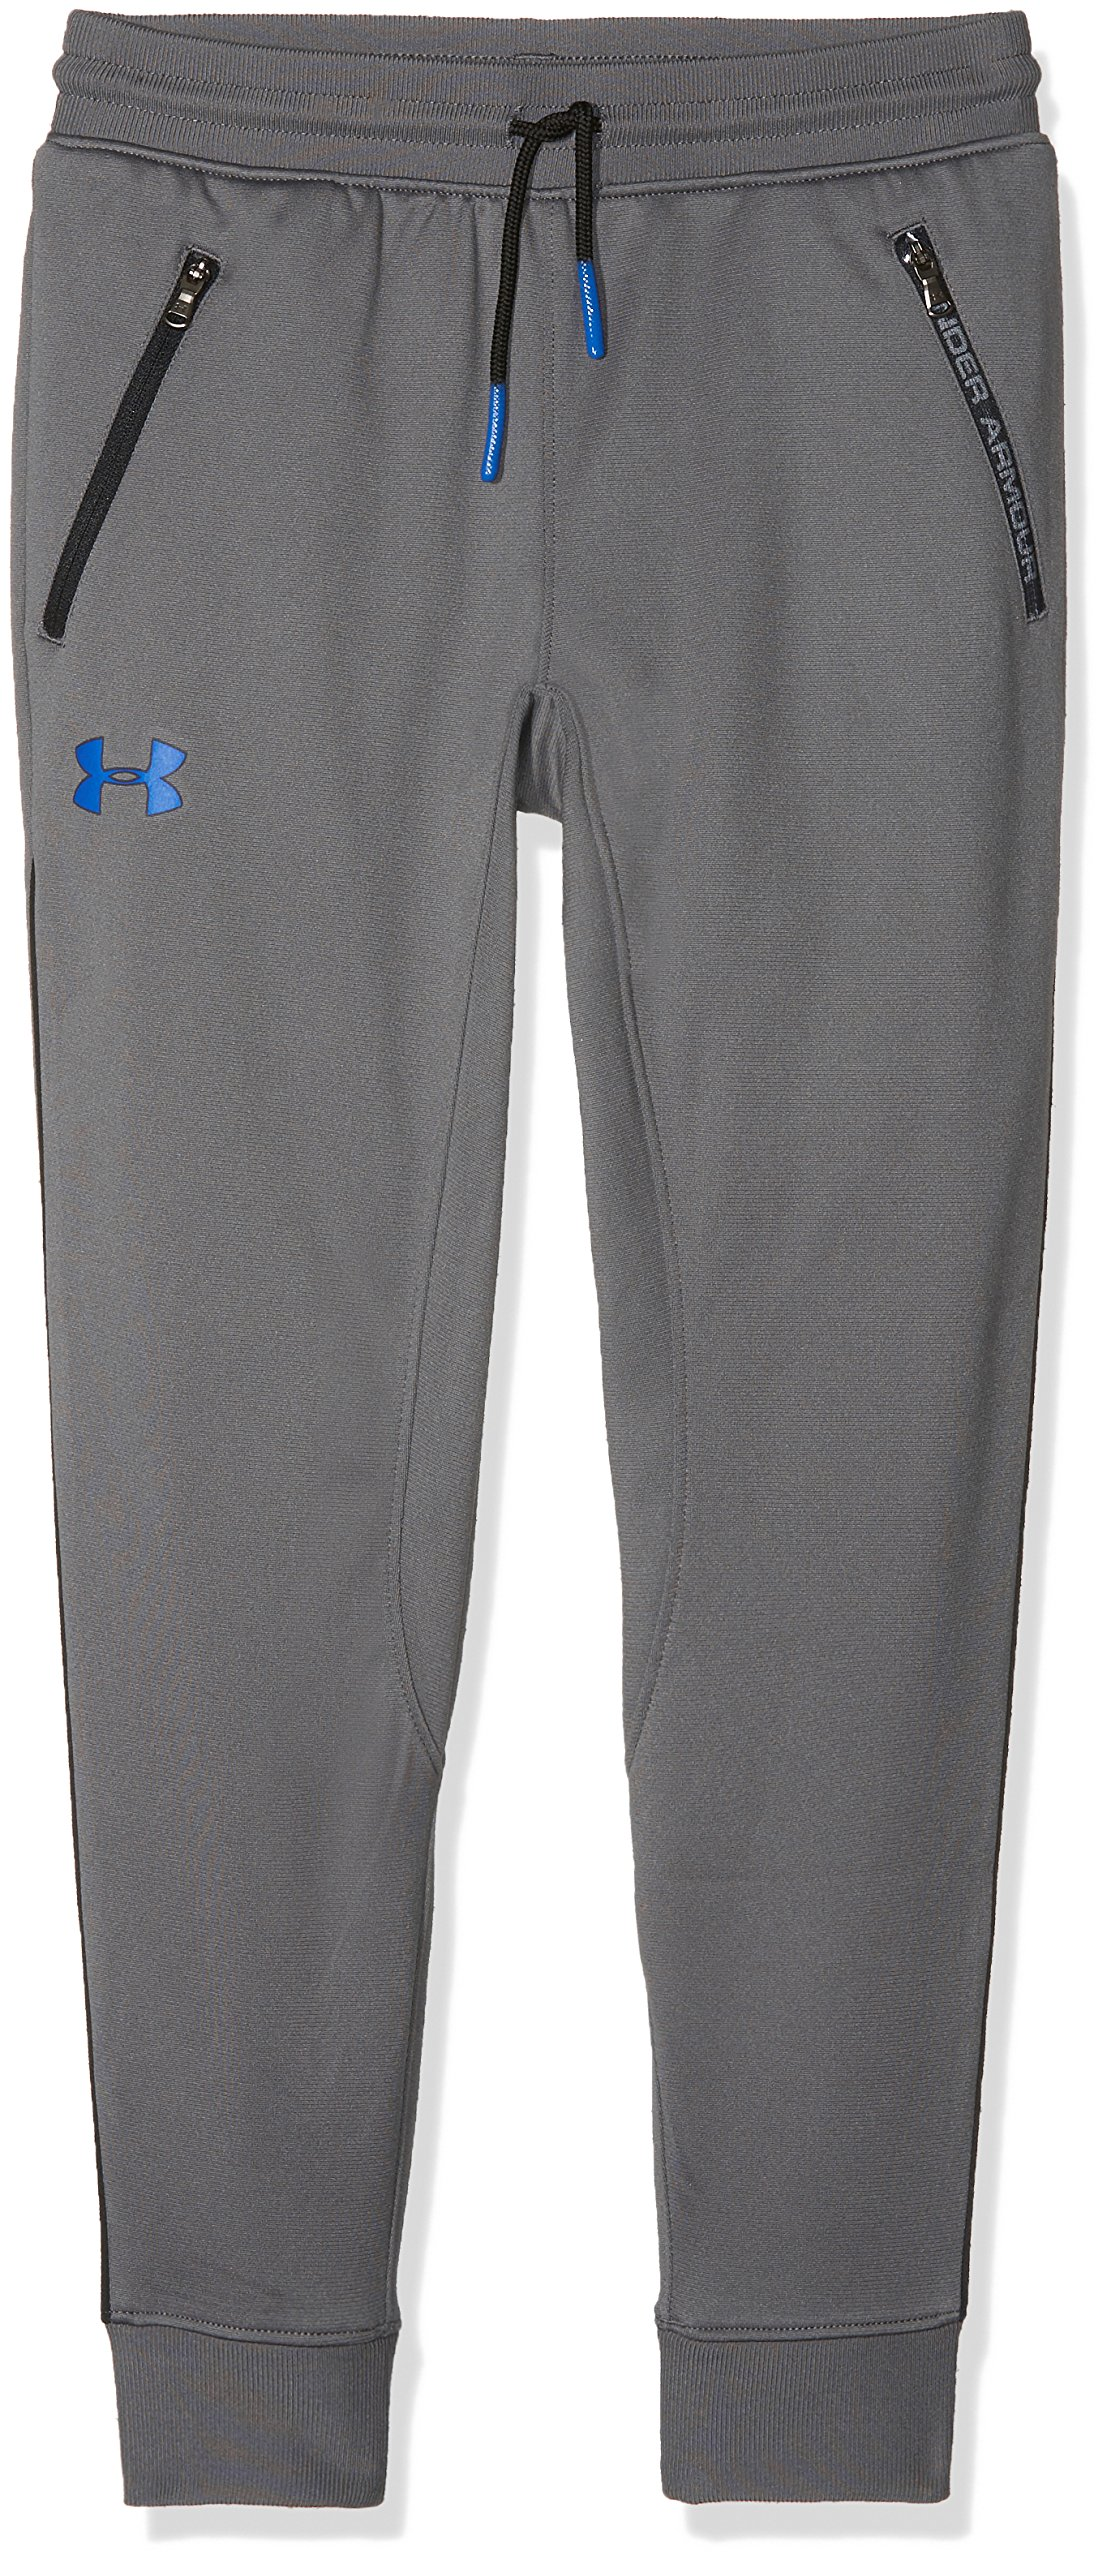 Under Armour Boys' Pennant Tapered Pants,Graphite /Ultra Blue, Youth Small